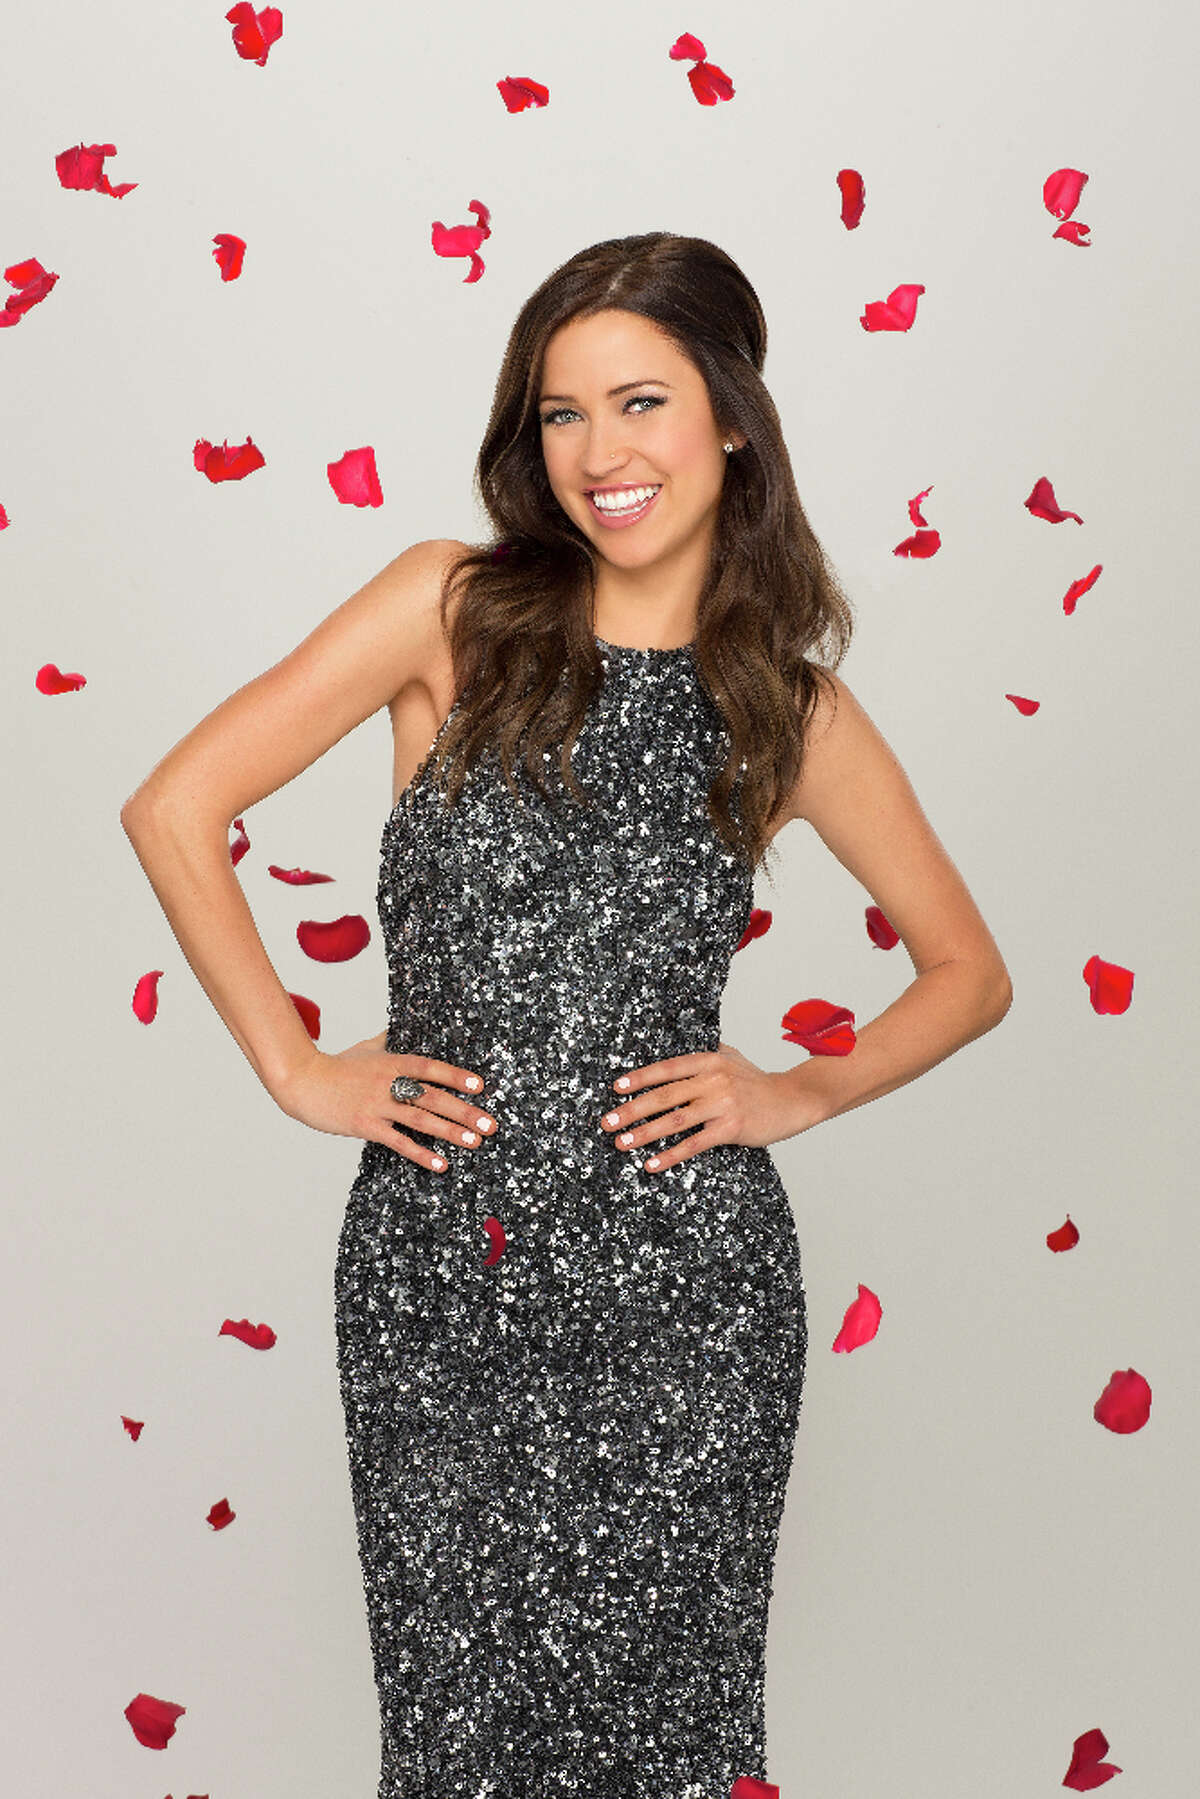 Chris Soules' second runner-up, spunky Kaitlyn Bristowe shook up The Bachelorette by inviting former Bachelorette contestant Nick Viall to join the cast, and then by sleeping with him early into the season. She eventually chose contestant Shawn Booth.As of this writing, Bristowe and Booth are still engaged, and she recently launched a fashion line.